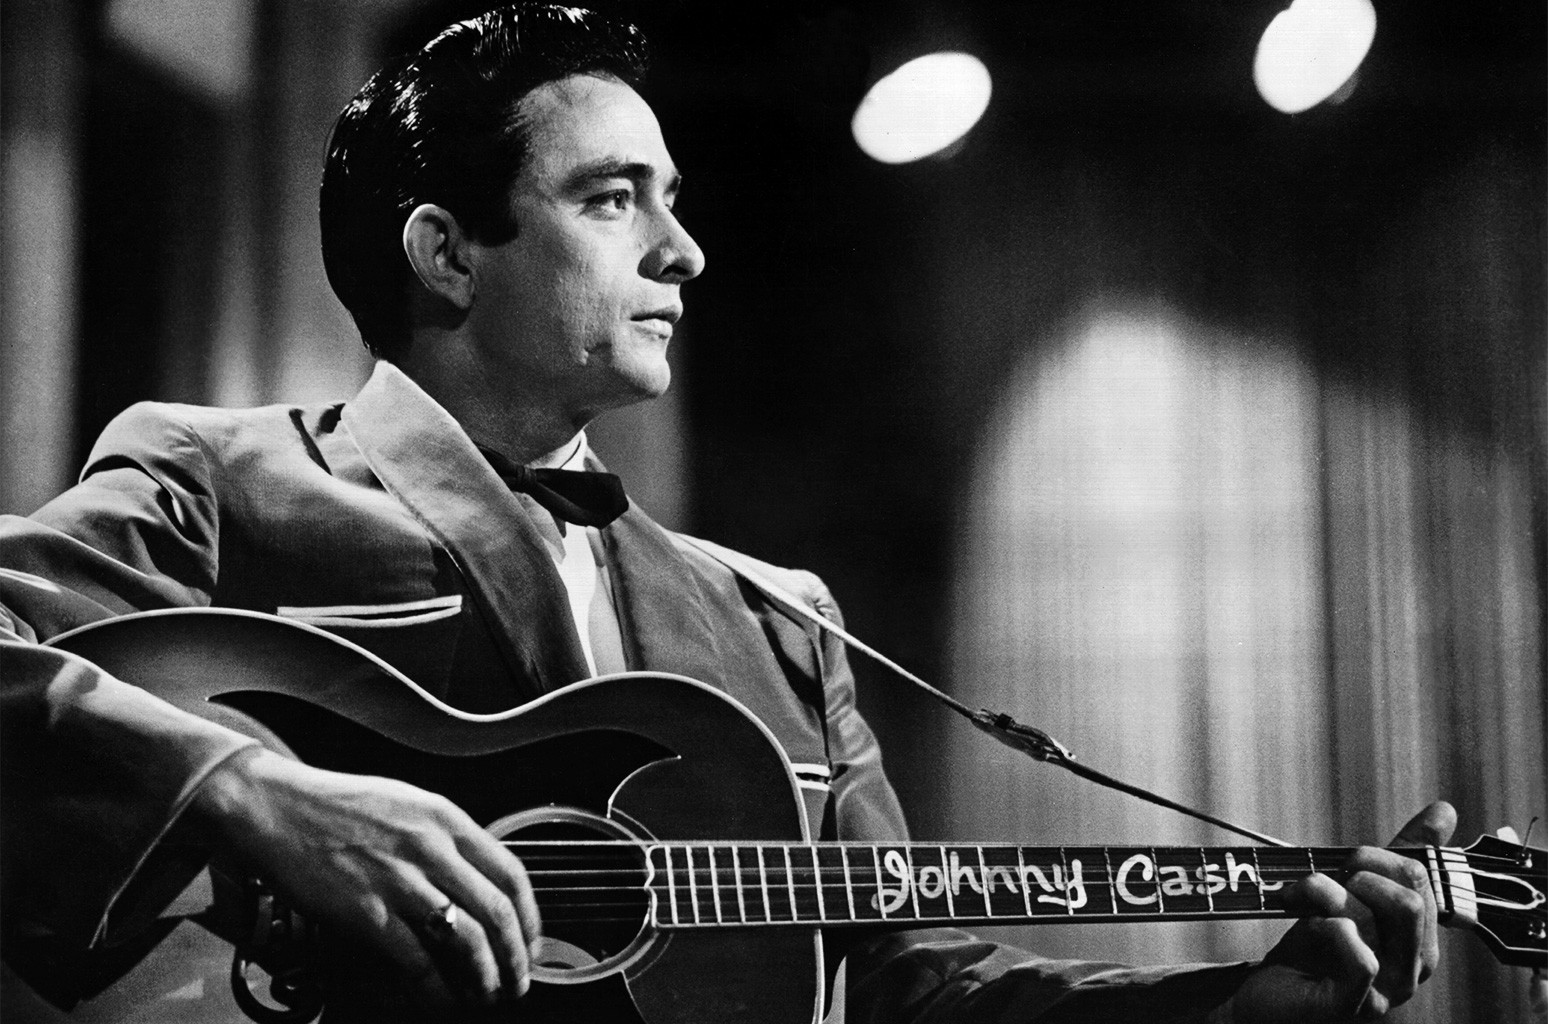 Johnny Cash brother what happened? here's Complete Details!